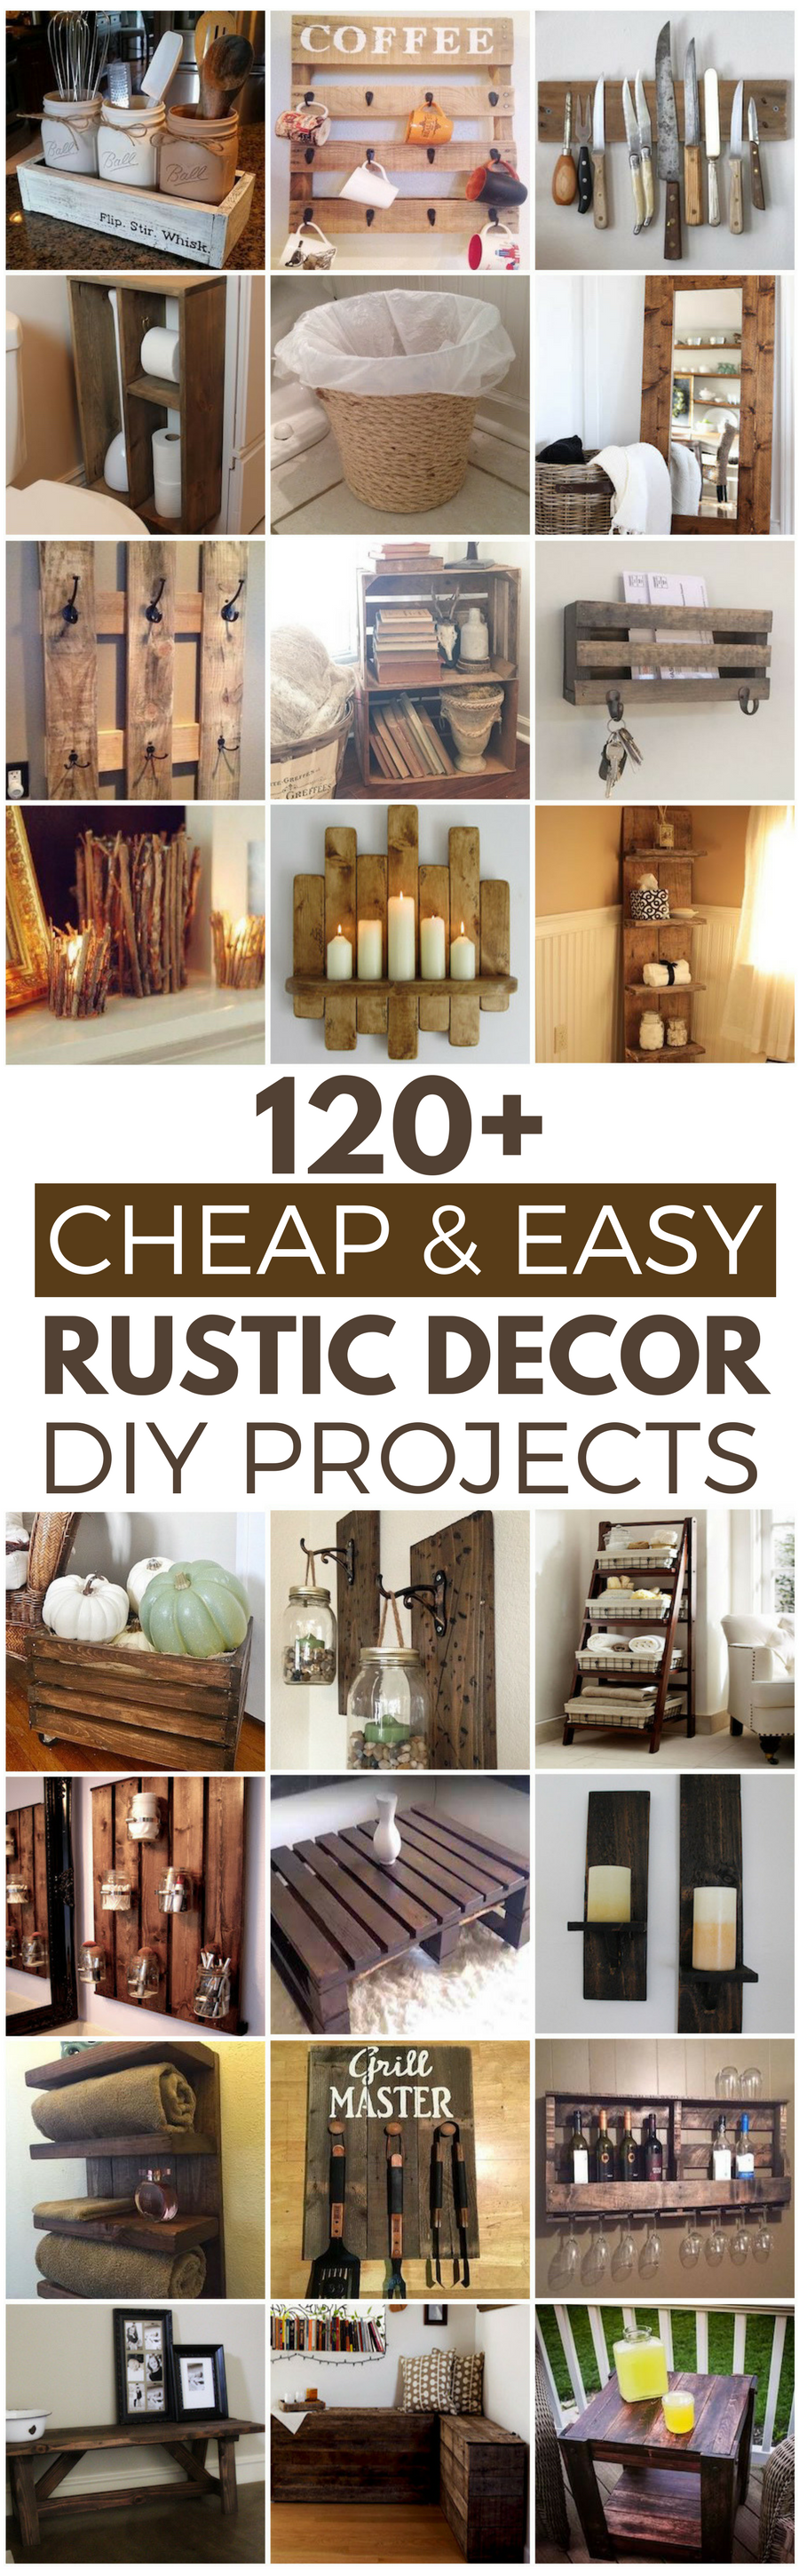 120 cheap and easy diy rustic home decor ideas prudent for Home decorating rustic ideas